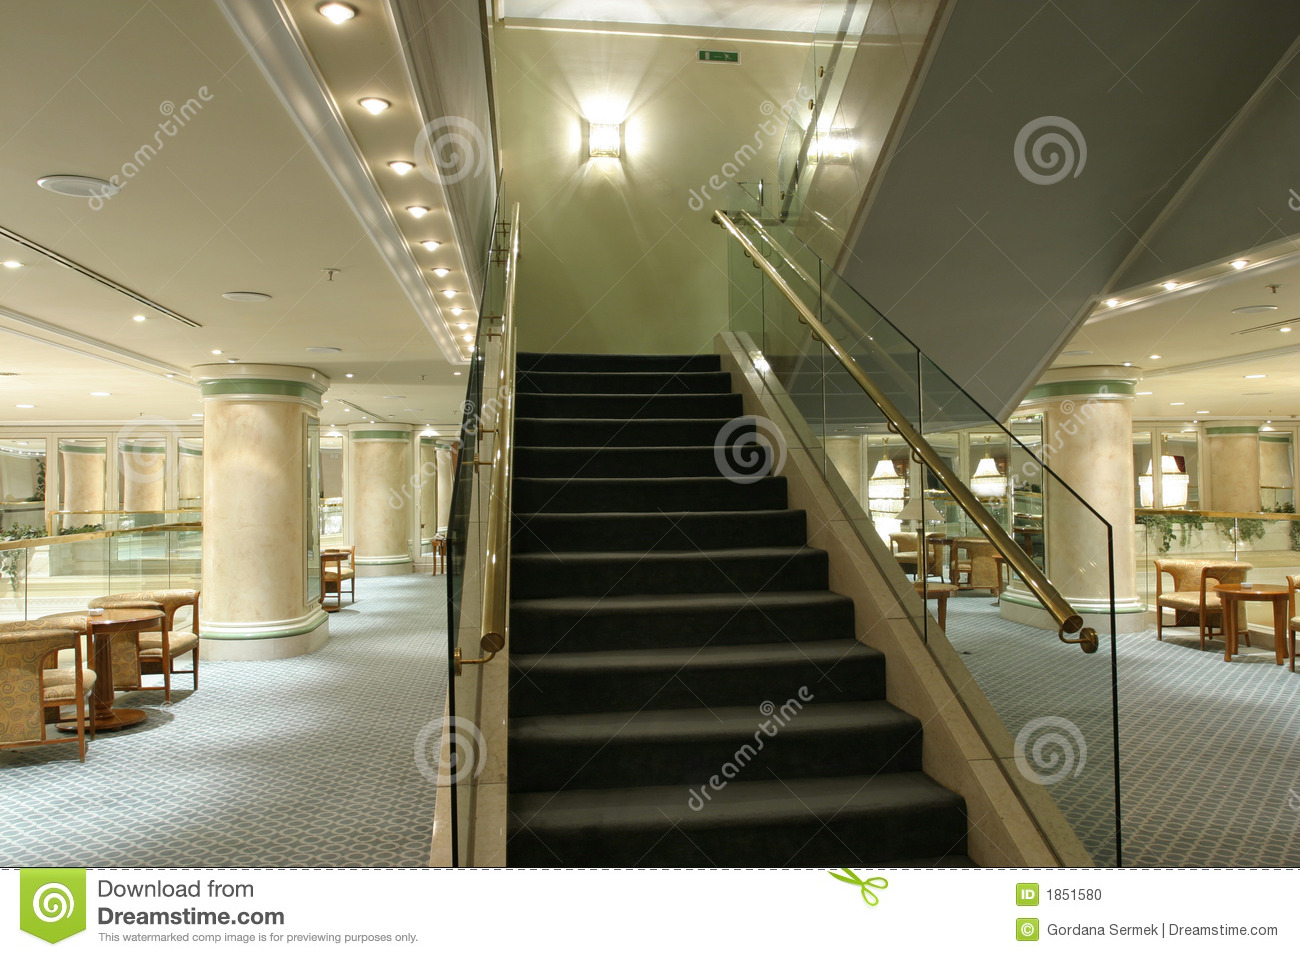 Escalier moderne photo stock image 1851580 for Escalier interieur moderne